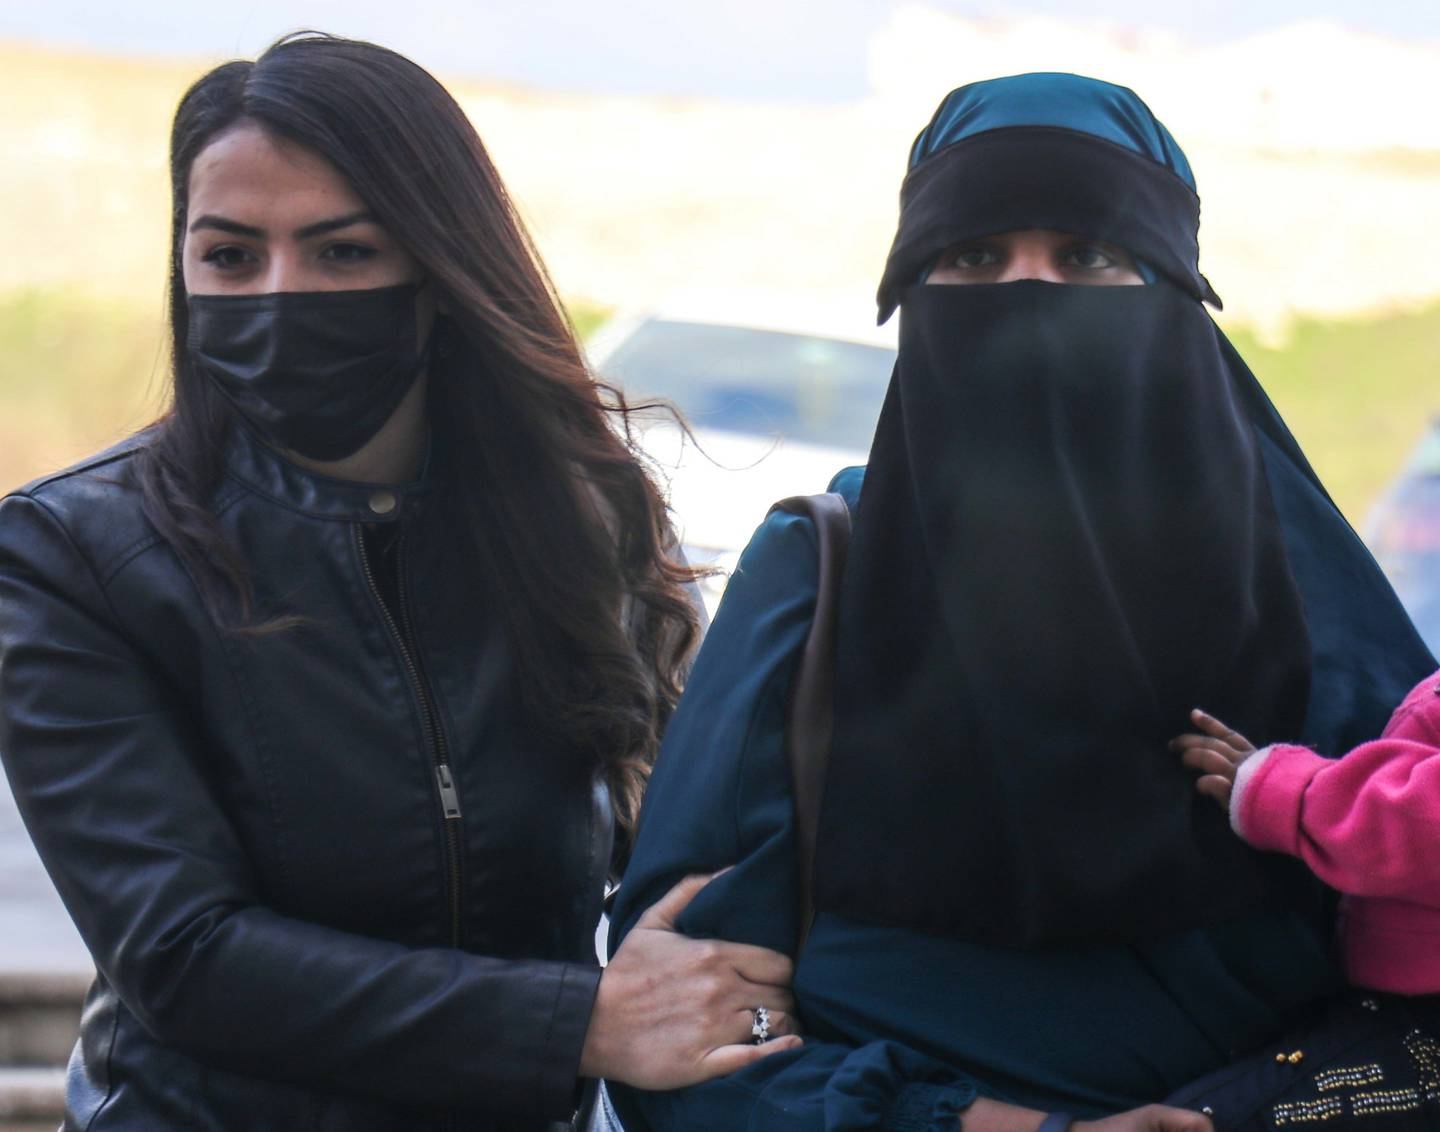 NZ-born Suhayra Aden (right) and her two children were detained by Turkey after trying to illegally cross the Syrian border earlier this year. Photo / Getty Images